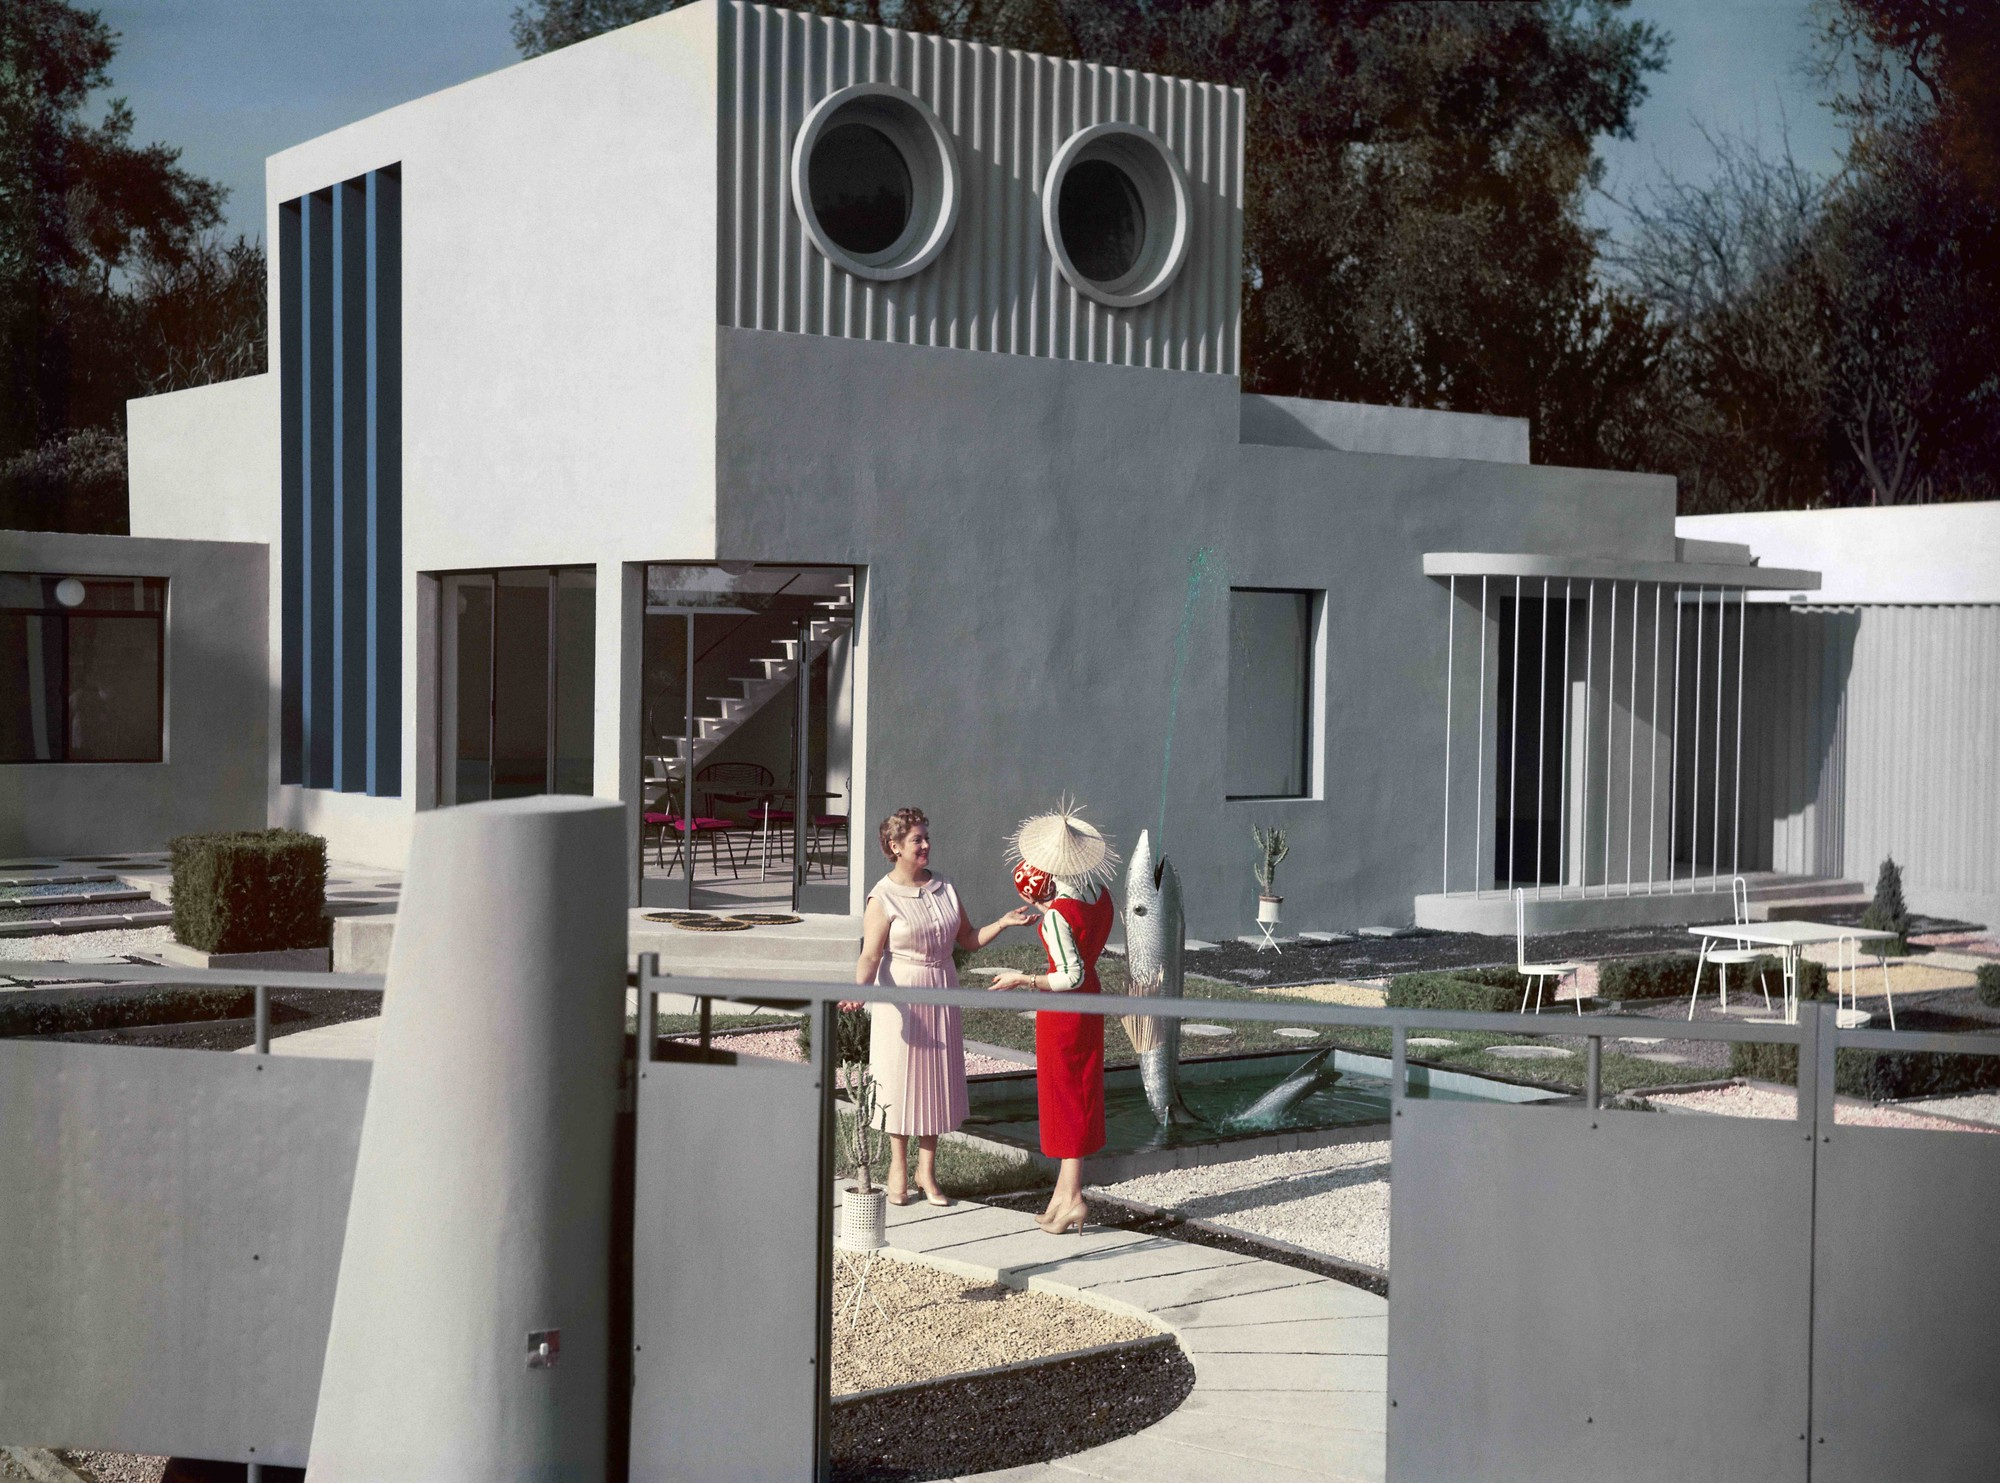 Villa Arpel in Mon Oncle.